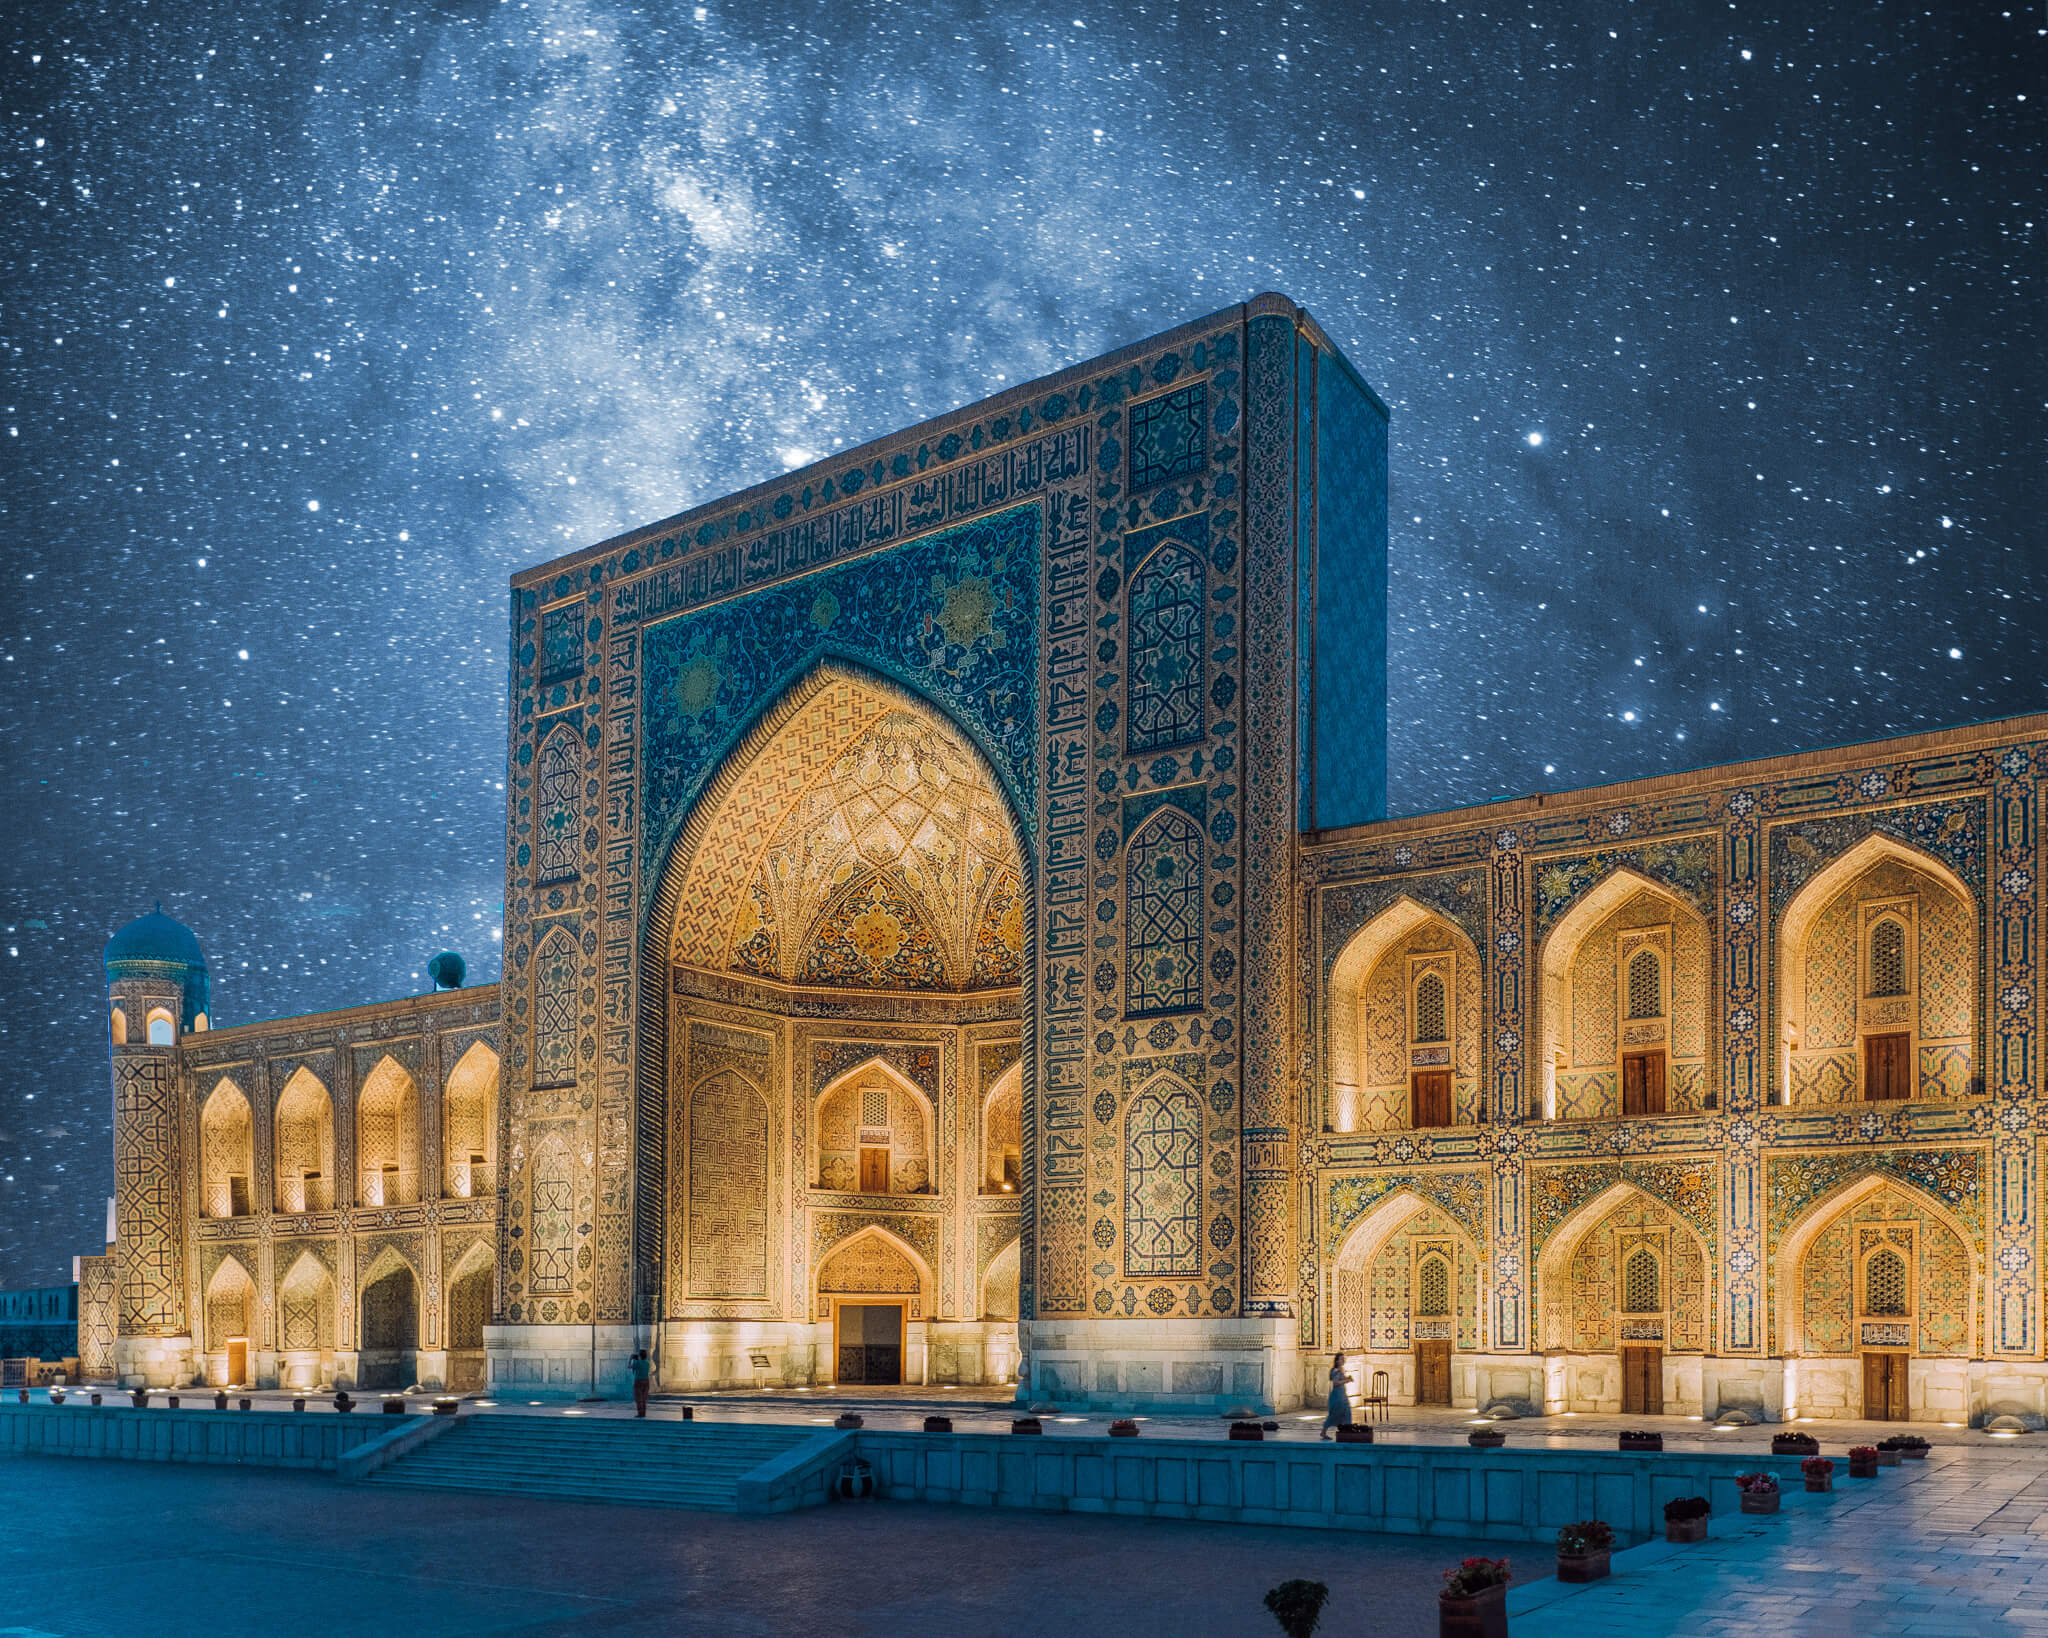 Samarkand-Night-Registan.jpg